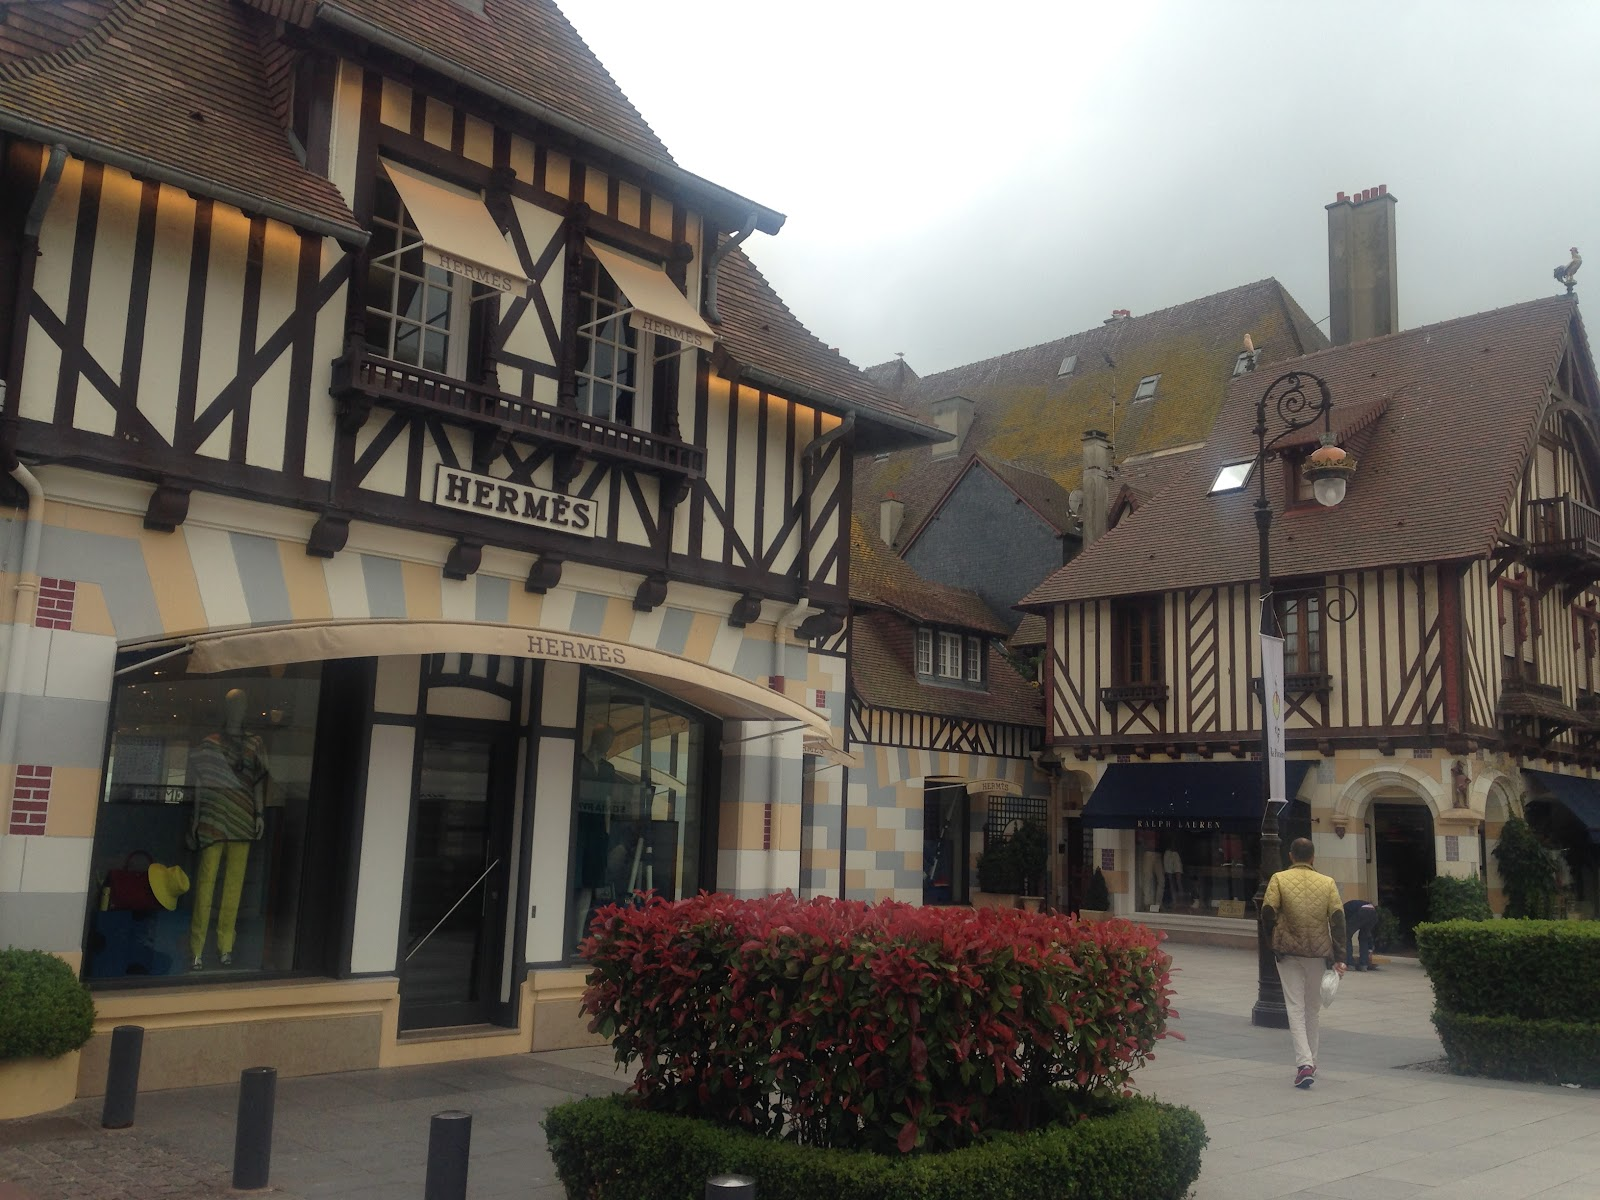 hermes luxury boutique in Deauville. Upscale store located in an authentic medieval building, surrounded by other traditional structures on a cloudy day in france.